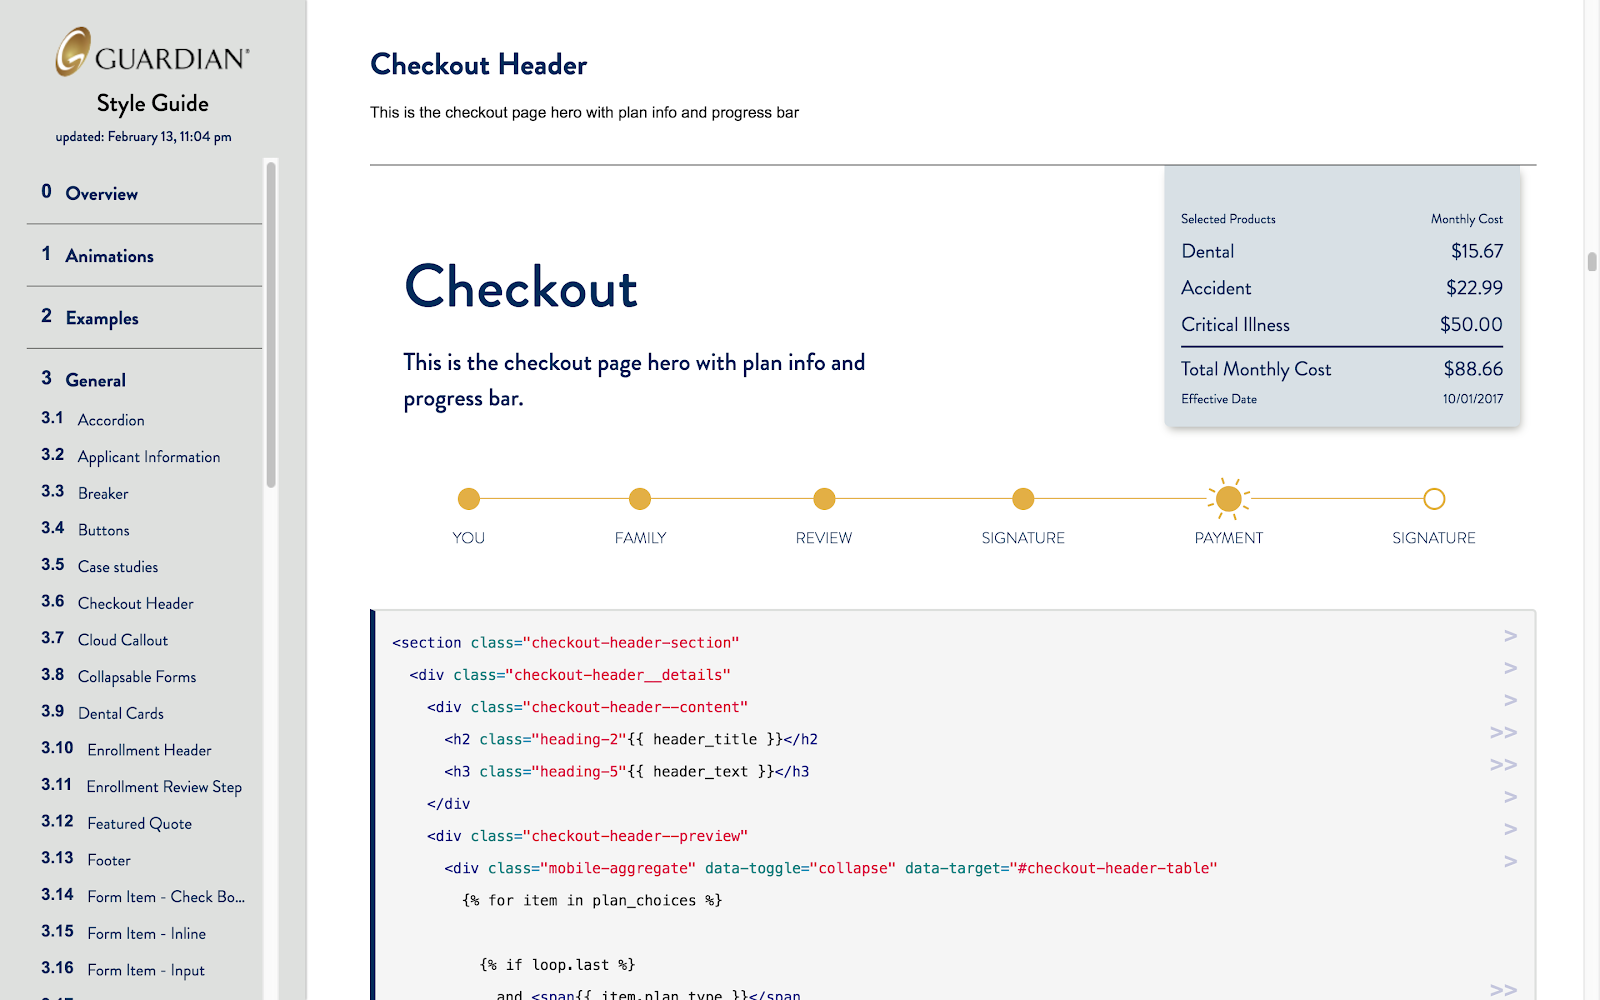 focus on style guide component showing checkout page with progress bar